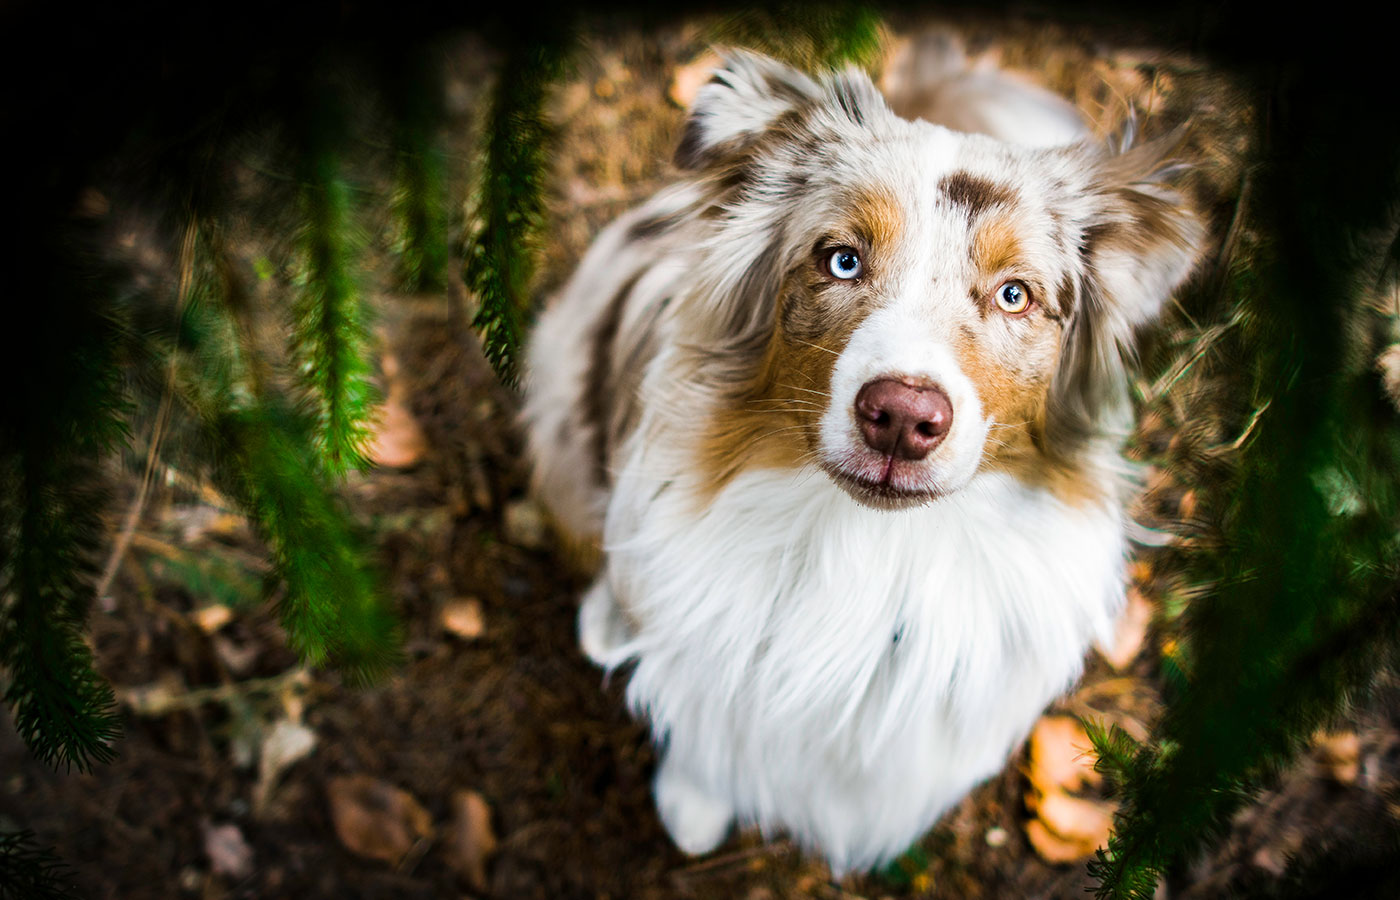 Red merle australian shepherd dog with amazing eyes sitting under the conifers.